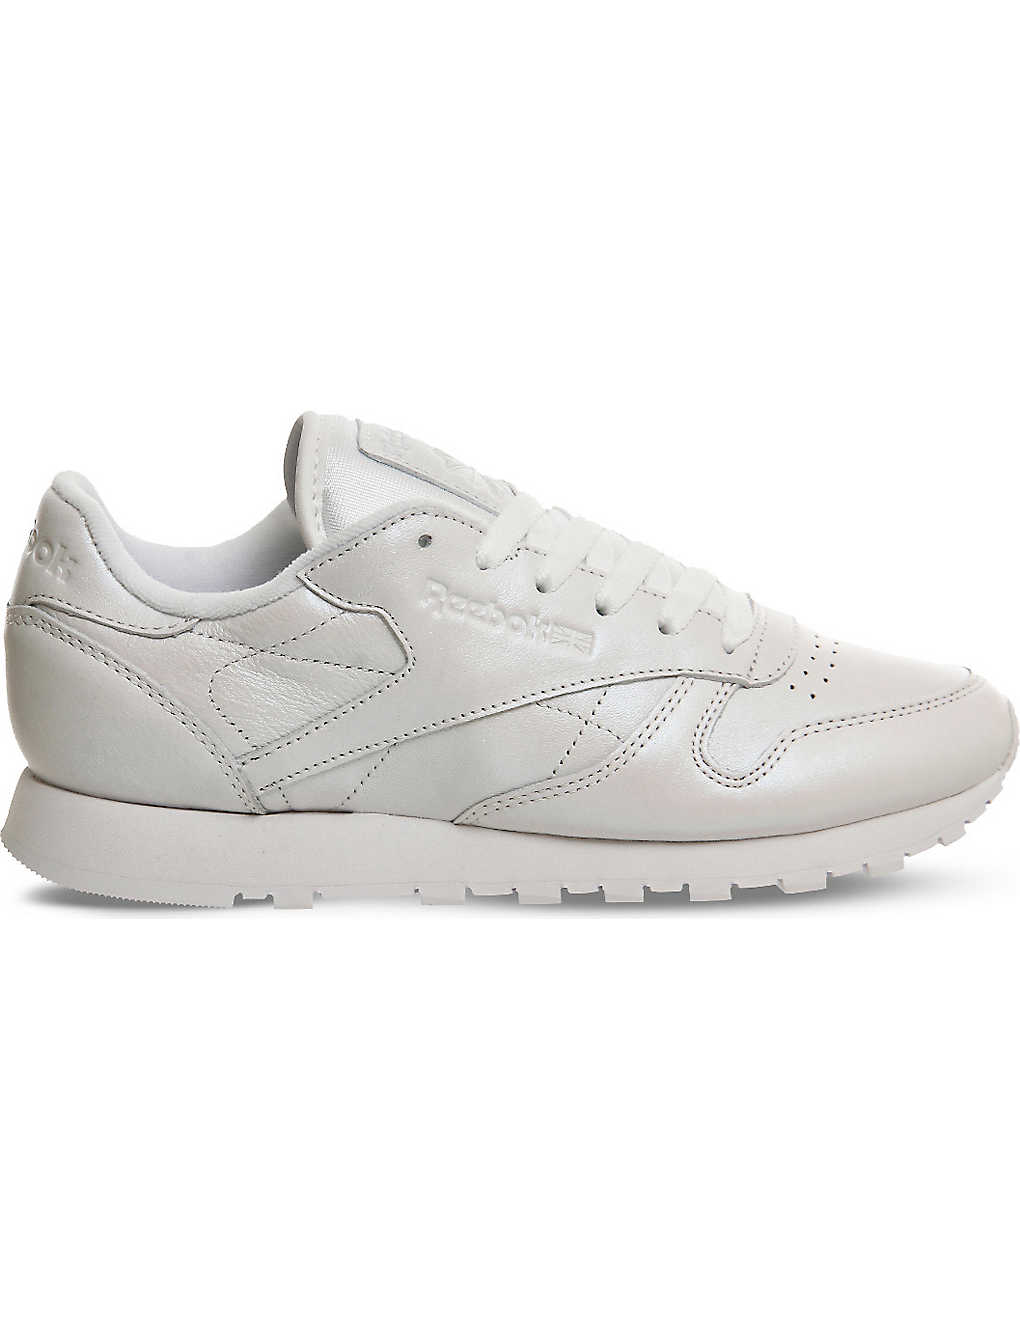 REEBOK - Classic pearlescent leather trainers  591bc50d8